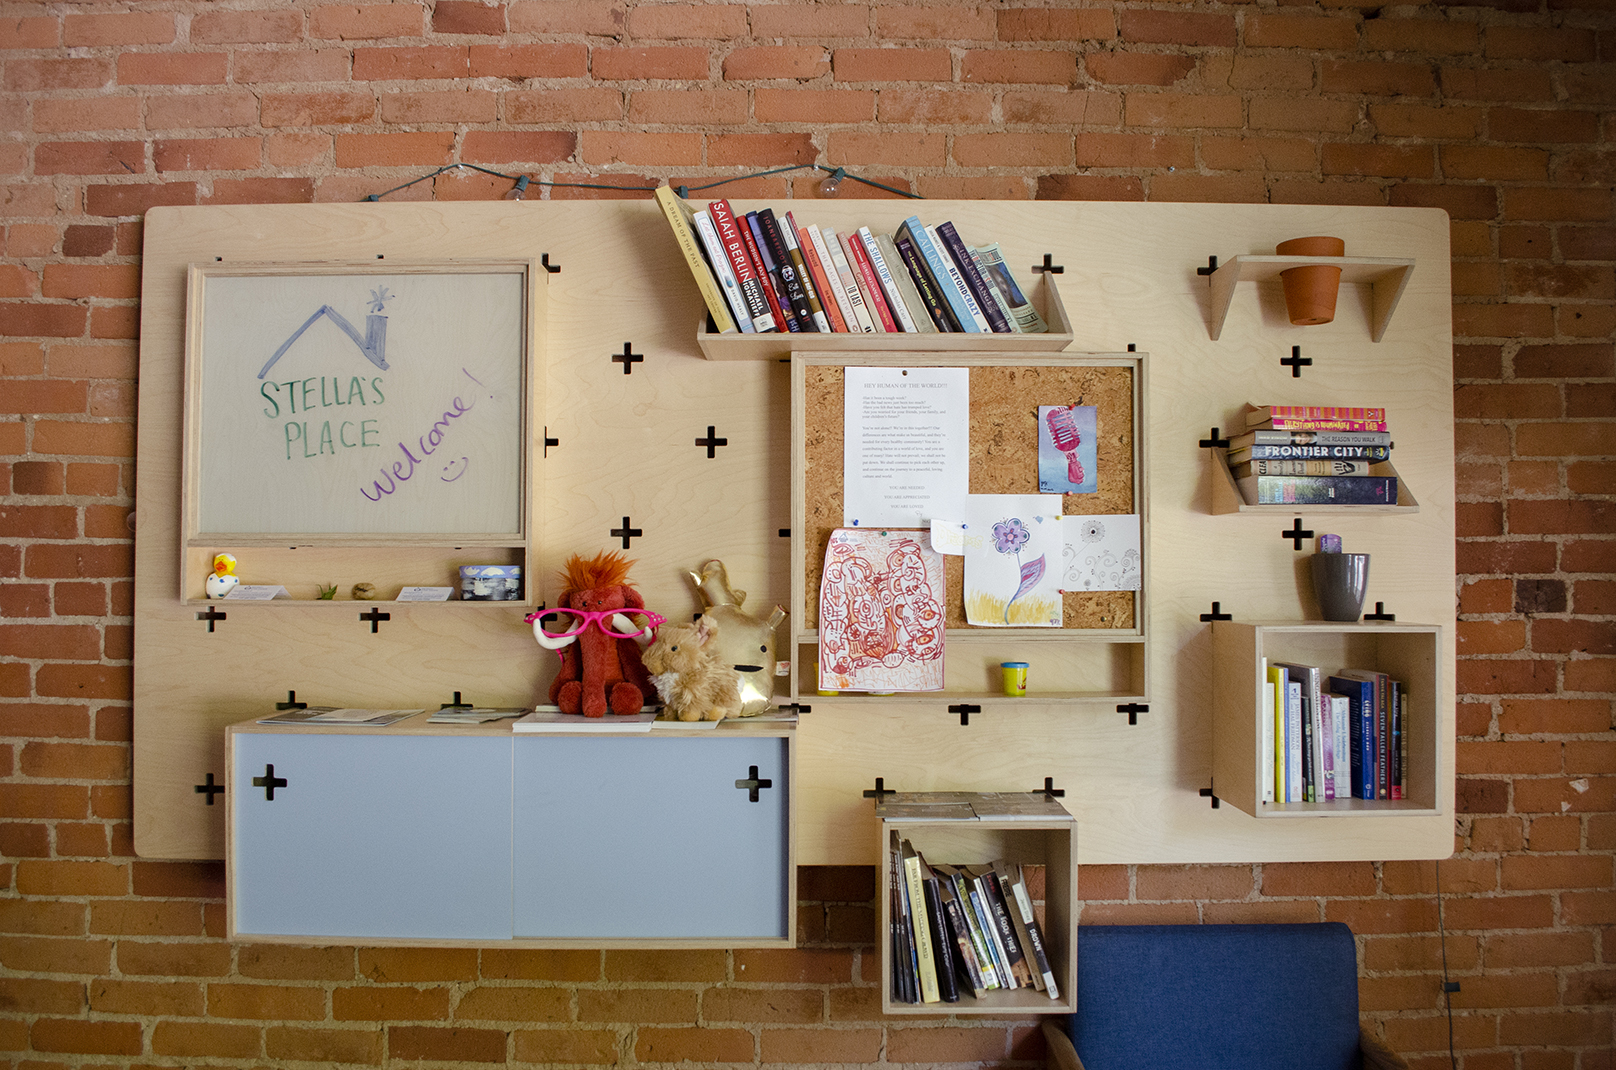 A photo of a wall in the Stella's Place café. A very bright and vibrant wooden shelf hung up on the wall has books, stuffed animals, drawings and more plastered all over.